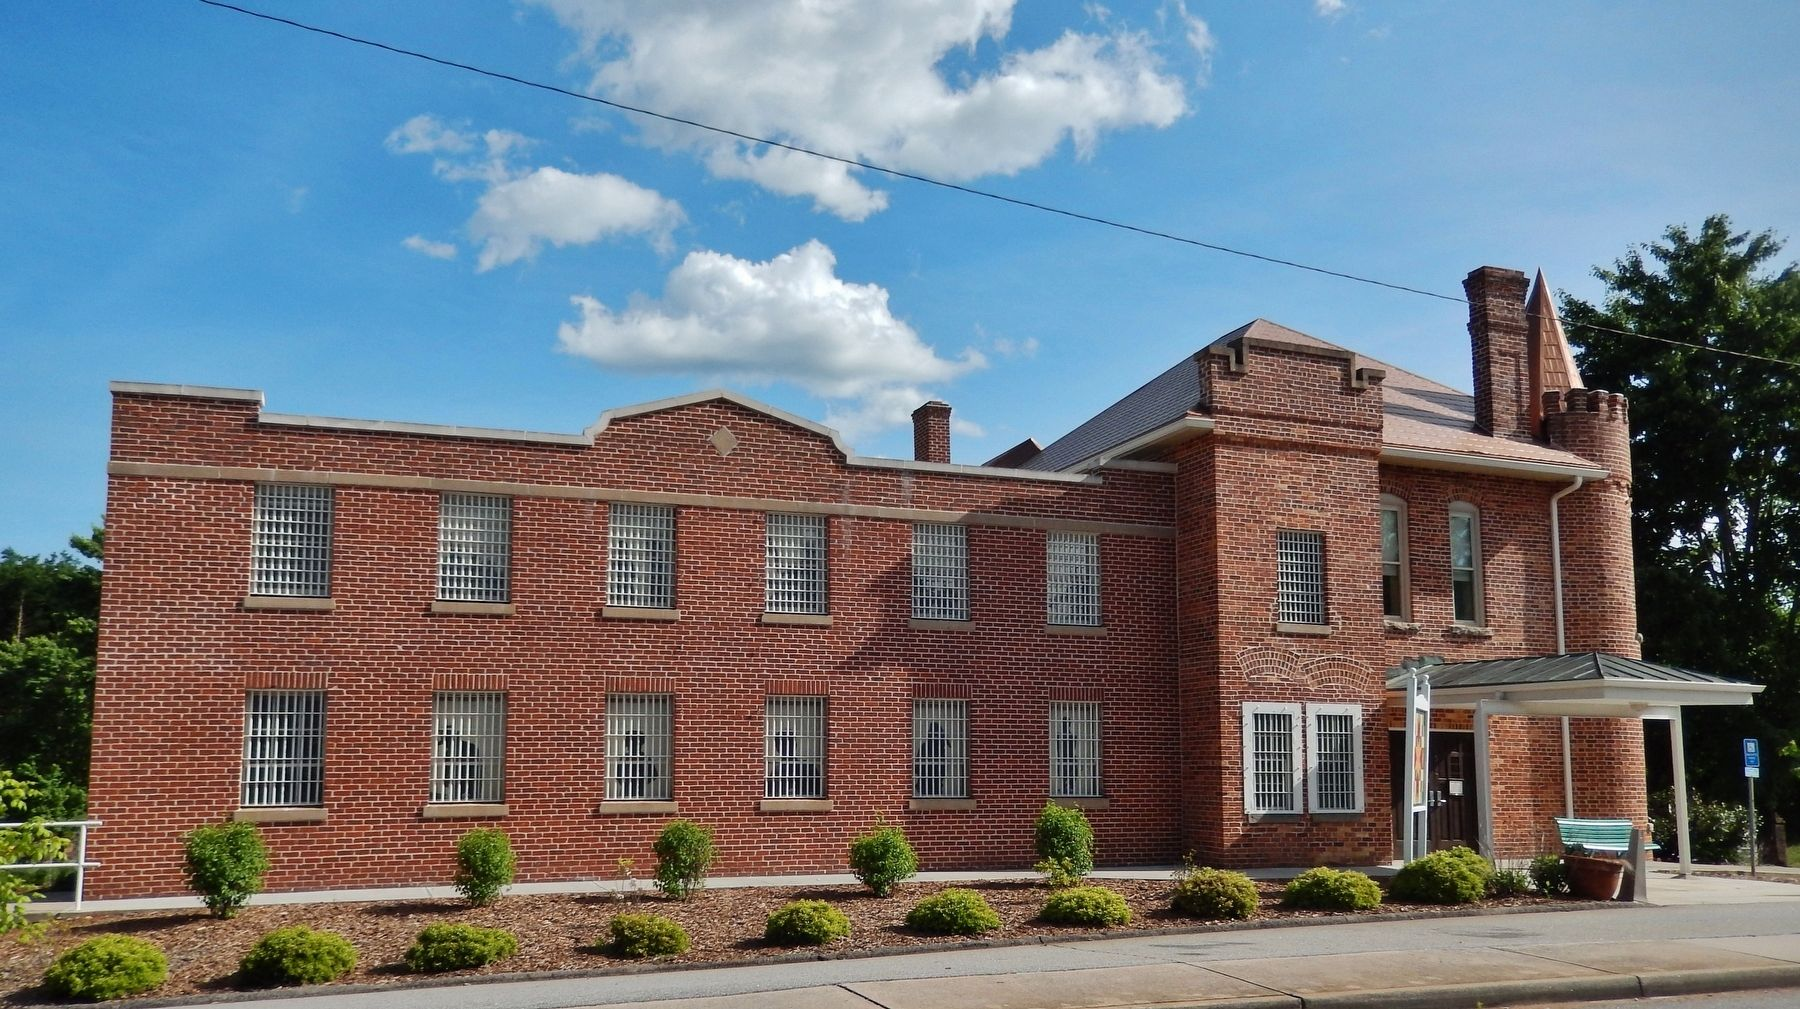 Pickens County Museum/Old Pickens Gaol (<i>north/front side; wide view from Johnson Street</i>) image. Click for full size.